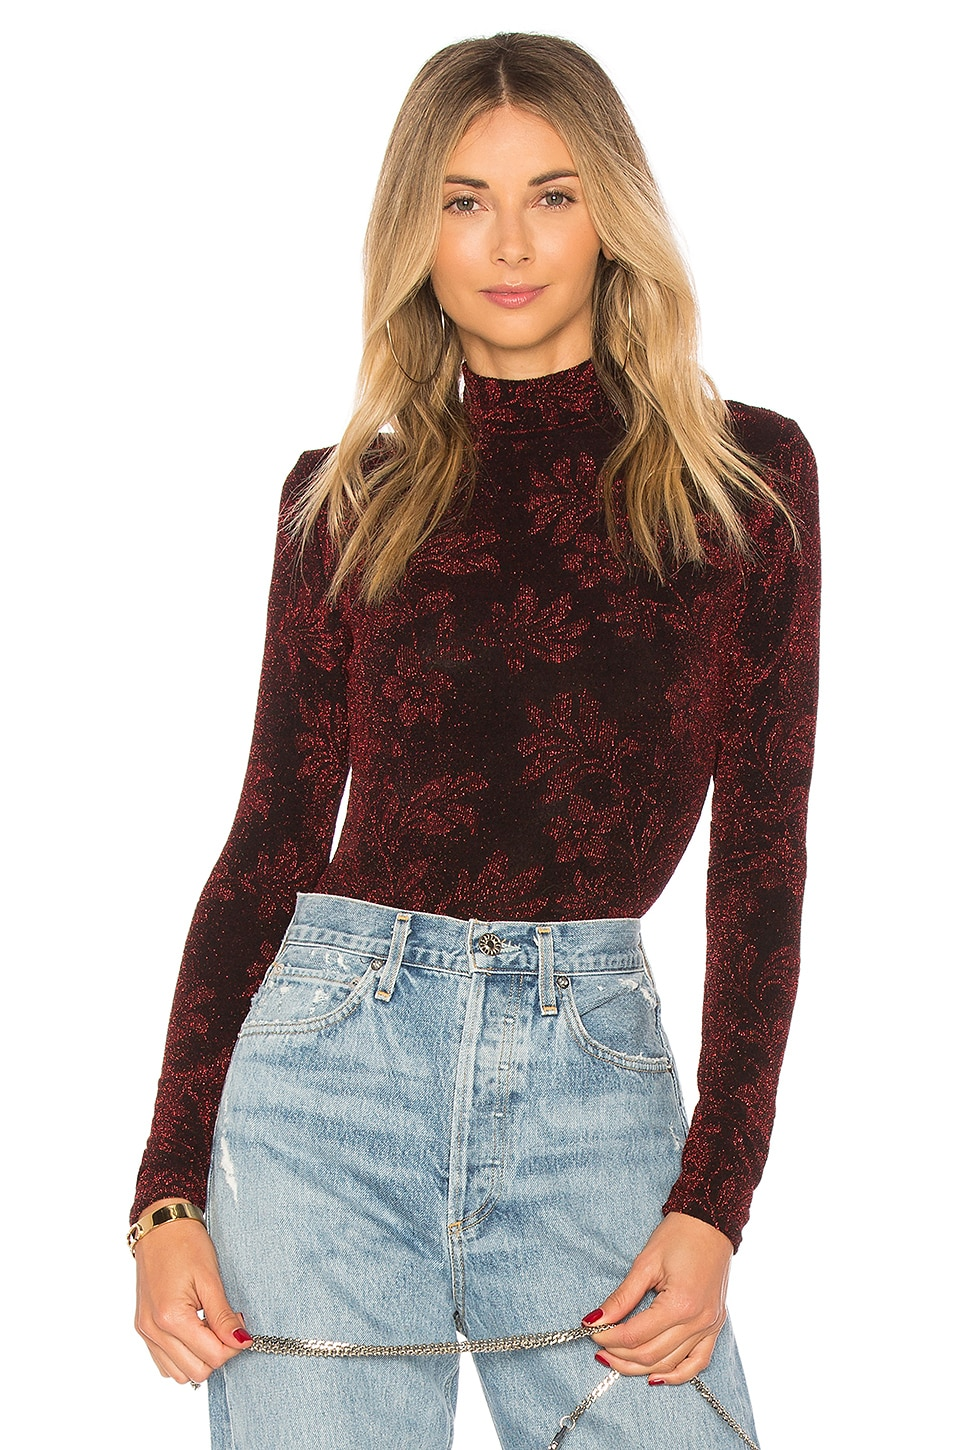 House of Harlow 1960 x REVOLVE Gwendolyn Bodysuit in Garnet